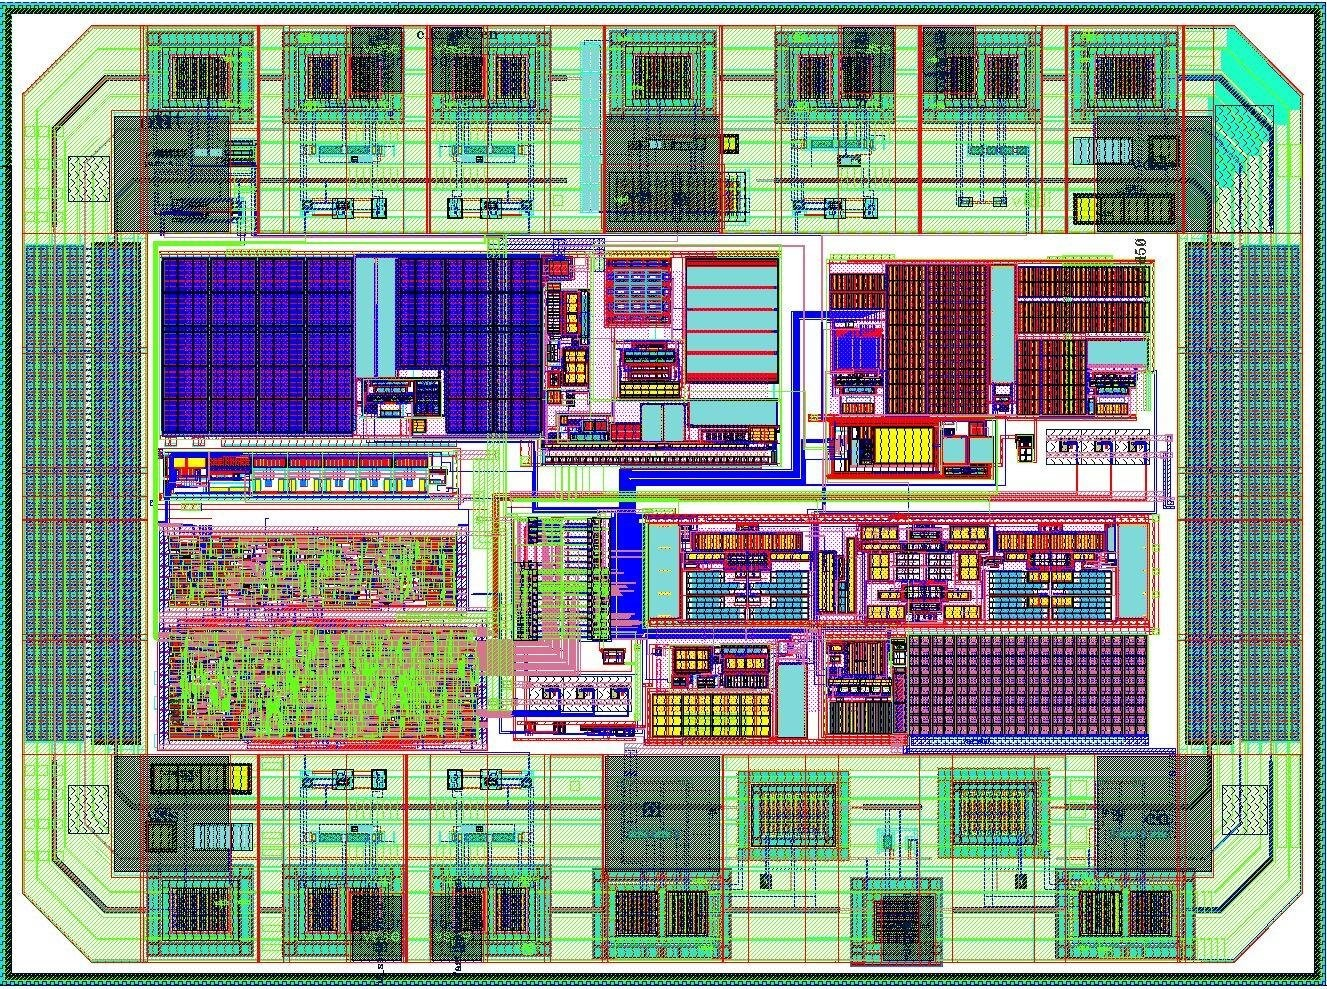 epc700-CSP6 General-Purpose Output-Driver Chips 24V/50mA